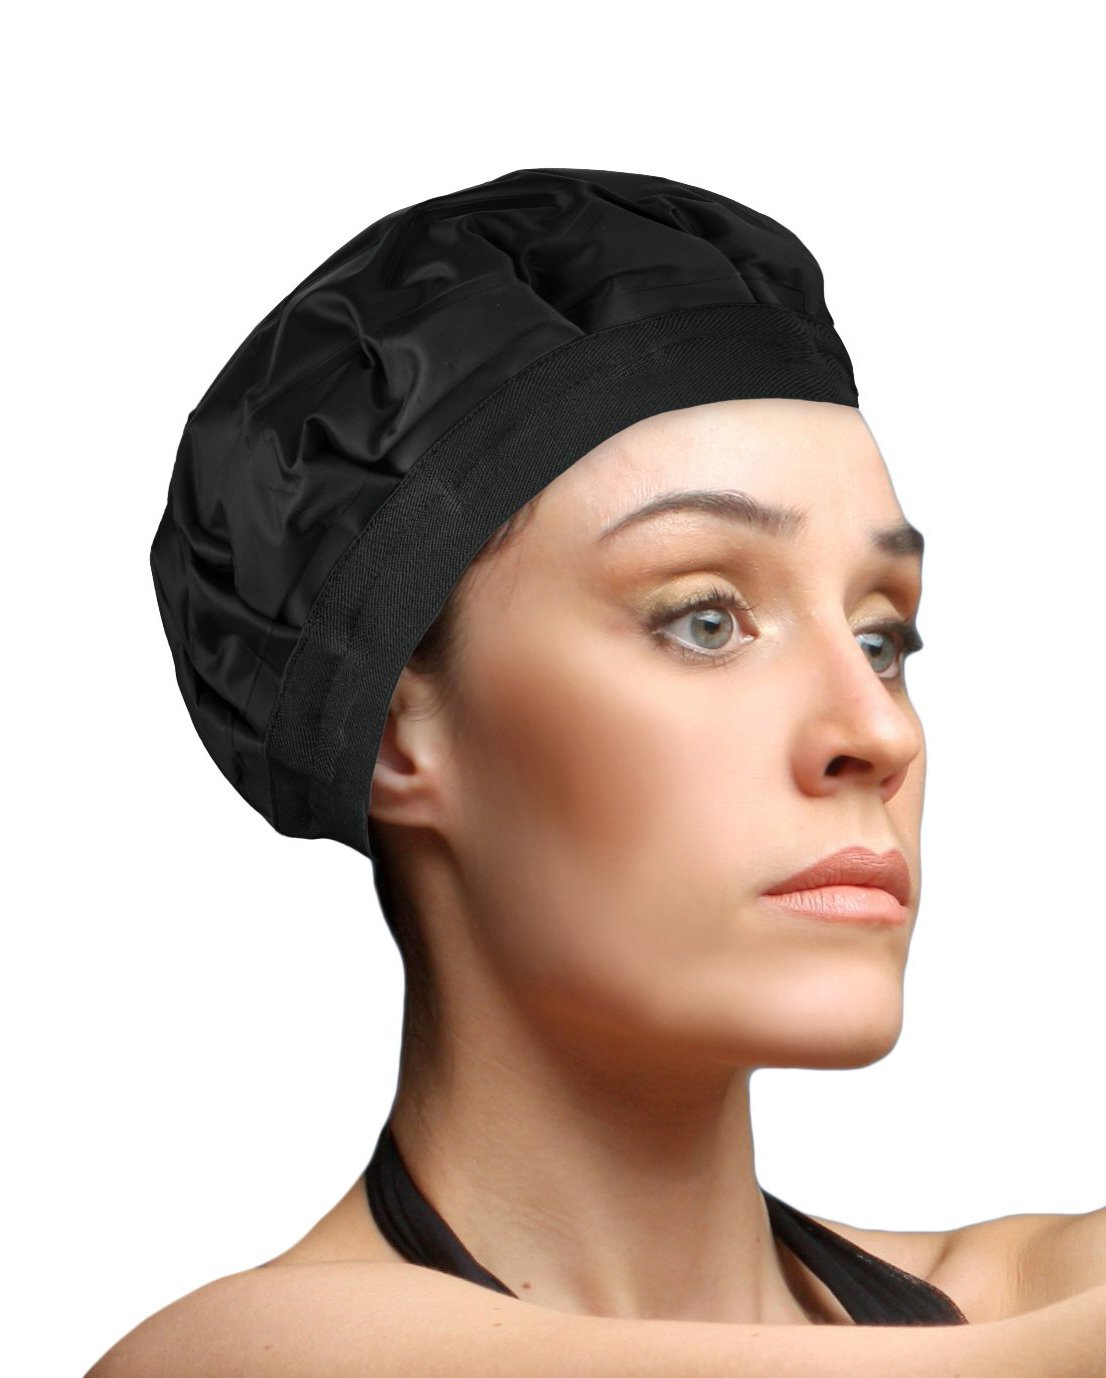 Heat Therapy and Ice Therapy Hair Care Steam Cap Wholesale